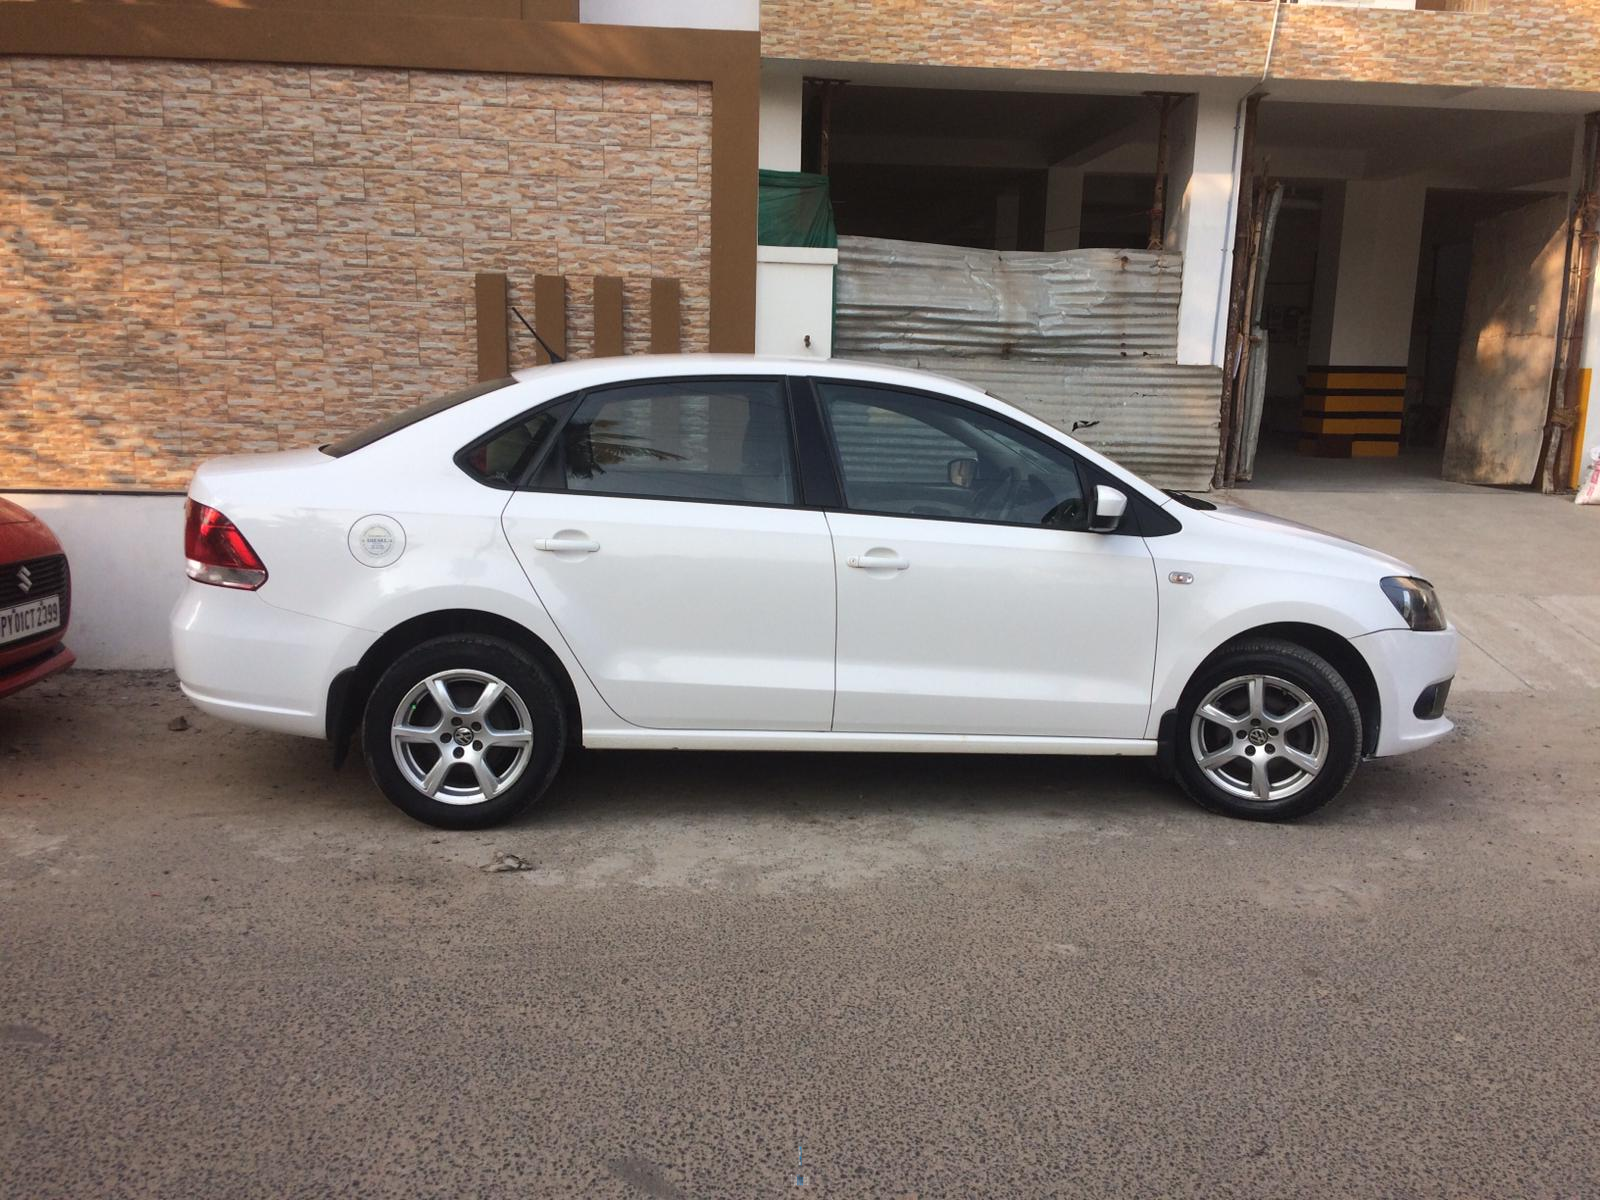 Truebluedeal Certified Cars Used Cars Buy Cars Sell Cars Car Prices In India Car Prices In Pondicherry News